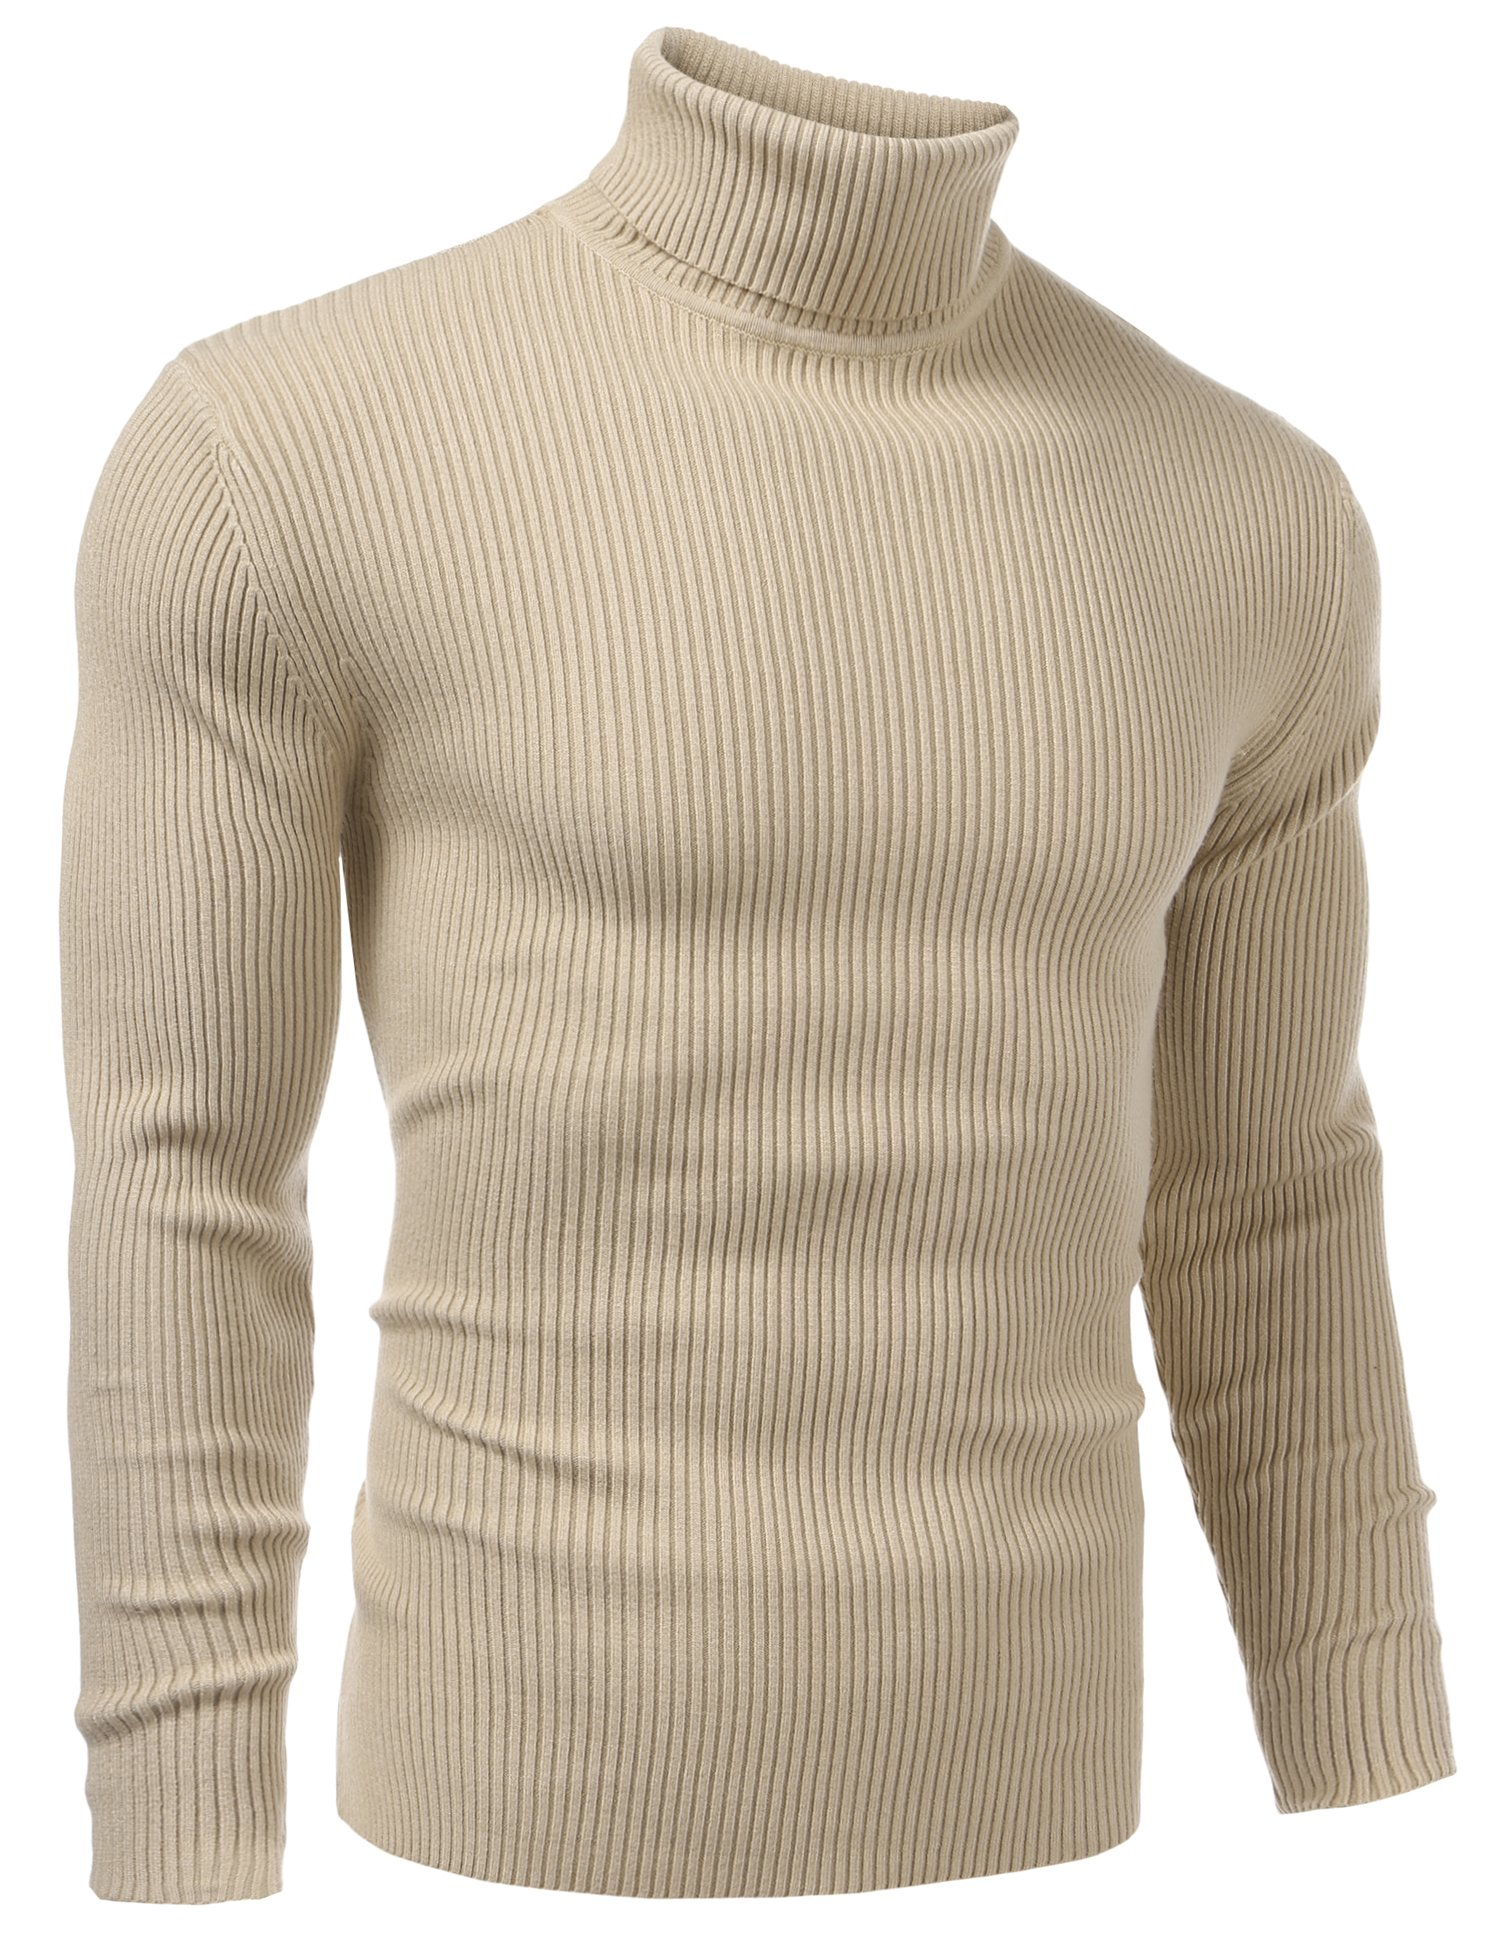 Vansop Mens Casual Wool Cashmere Knitted Sweater Long Sleeve Turtleneck Pullover Tops(Khaki XL) by Vansop